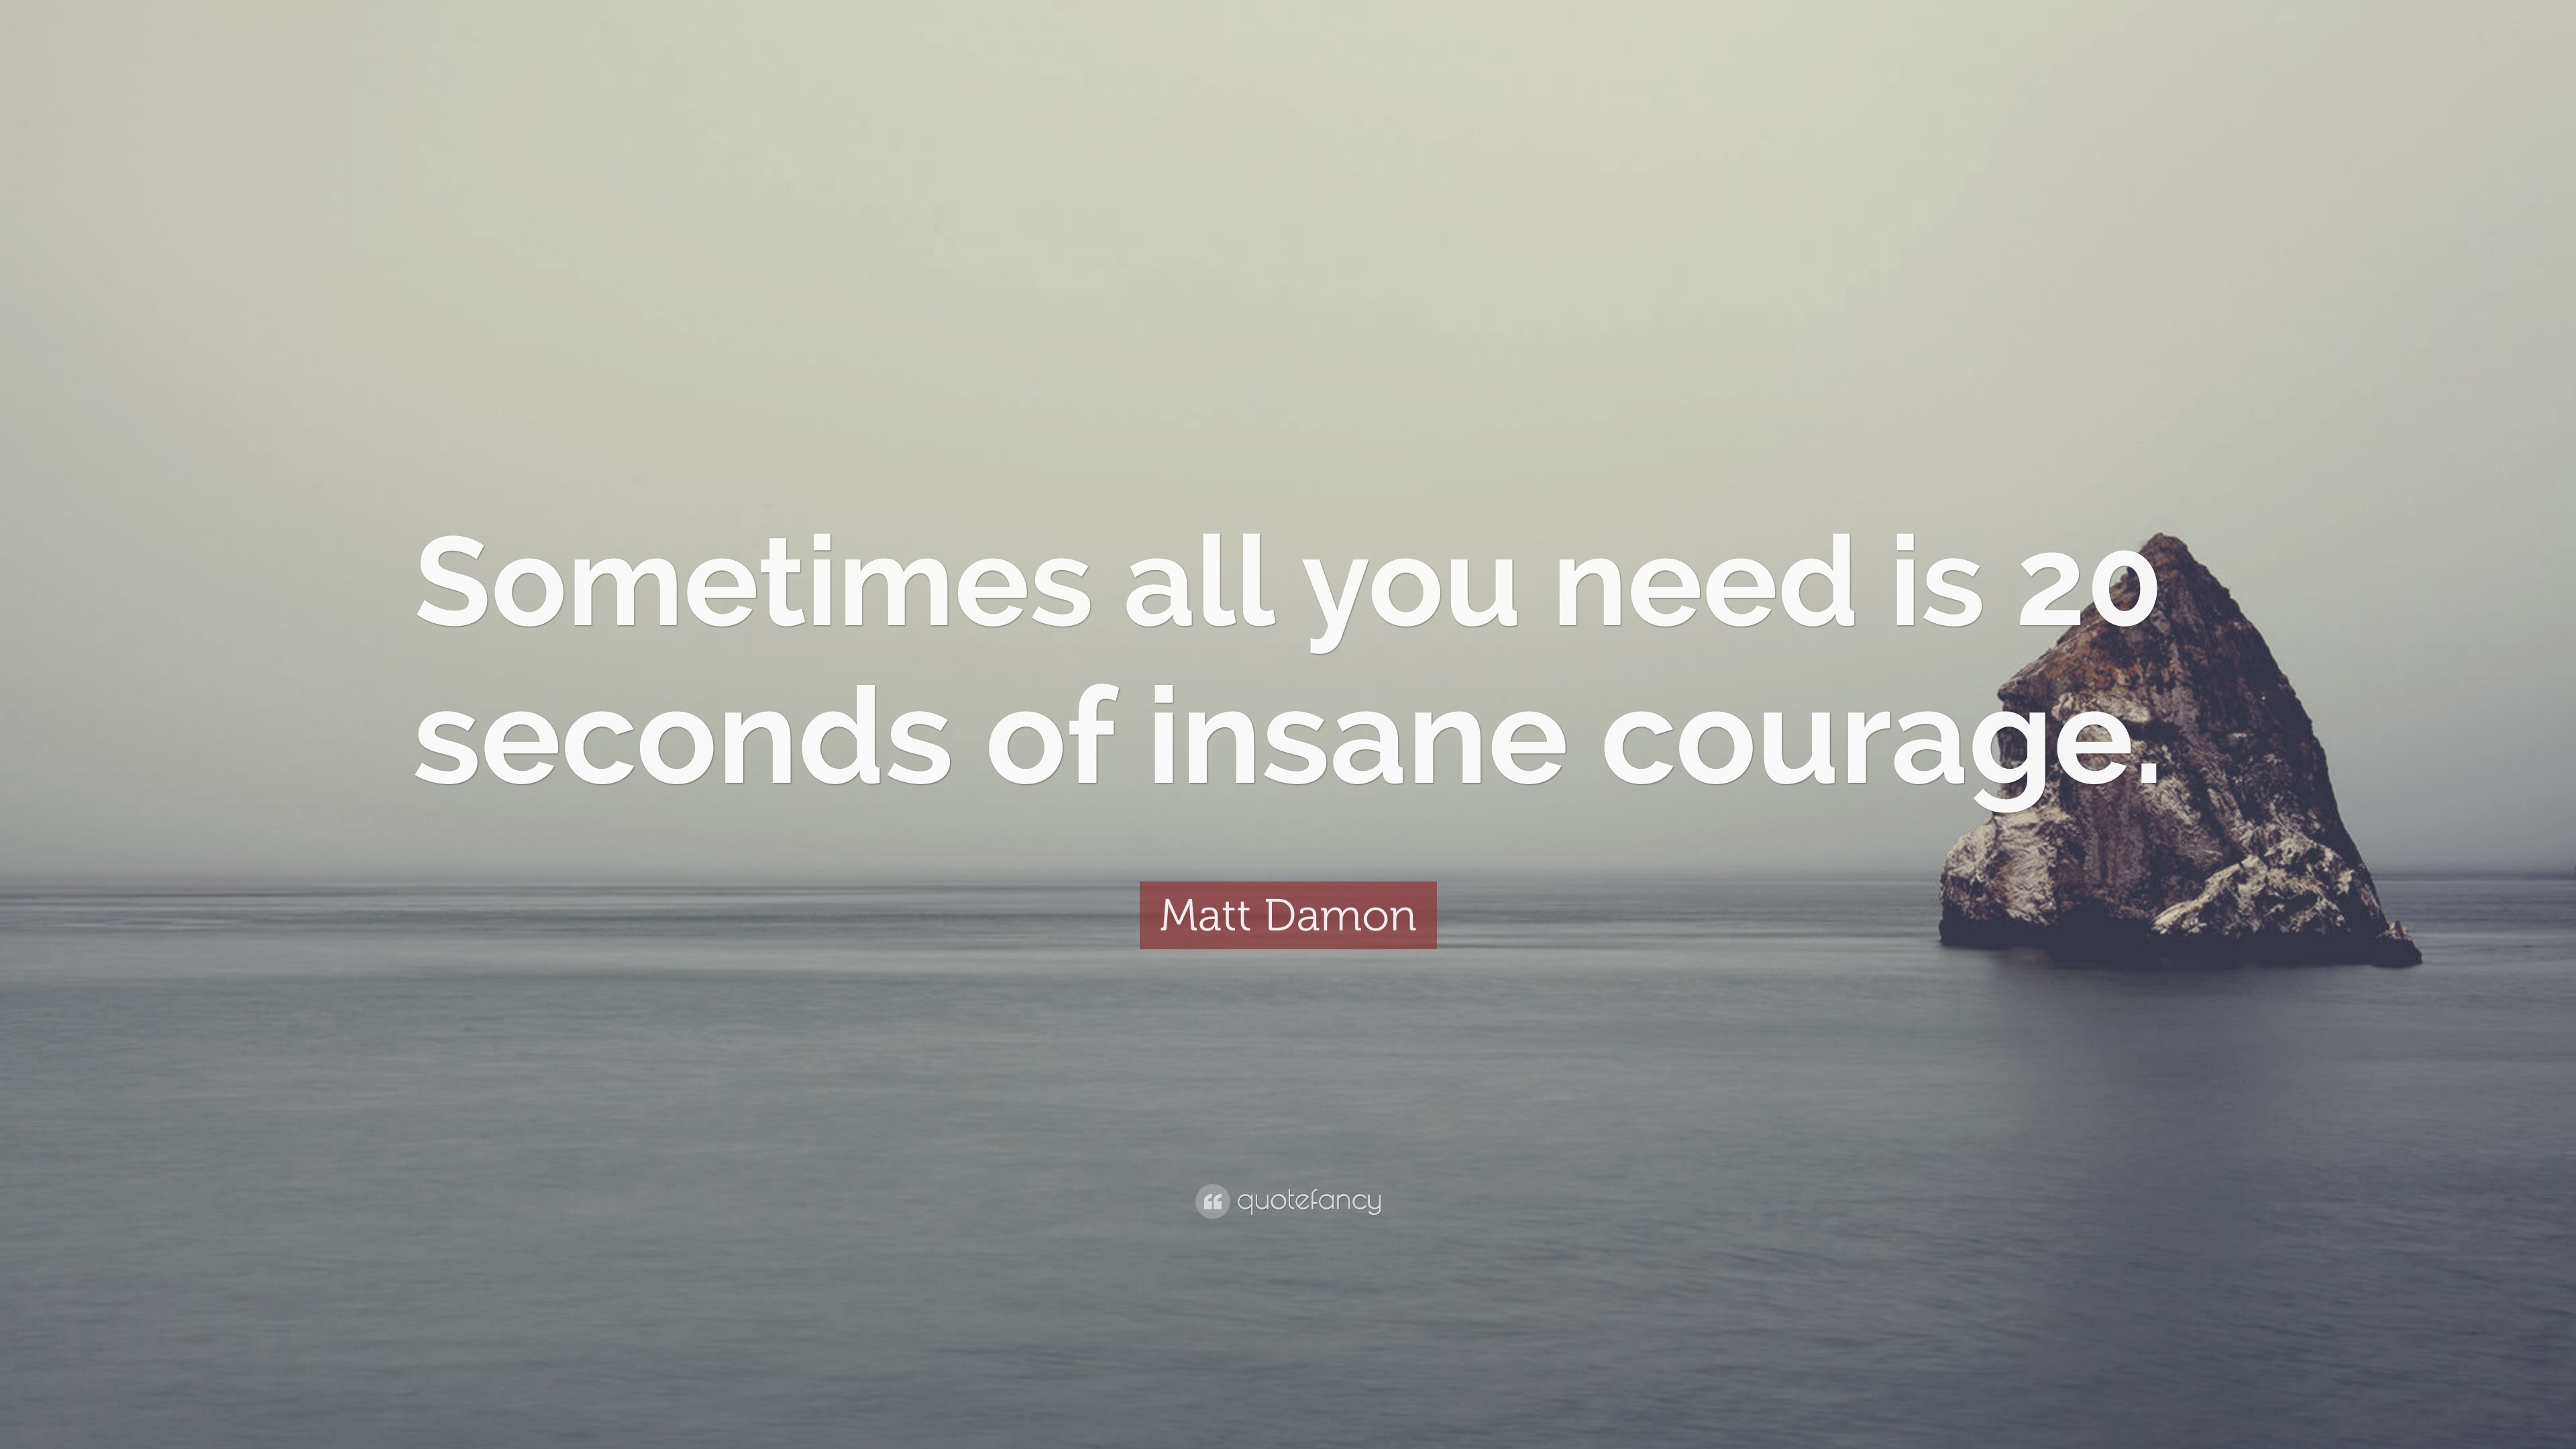 Matt Damon Quote: U201cSometimes All You Need Is 20 Seconds Of Insane Courage.